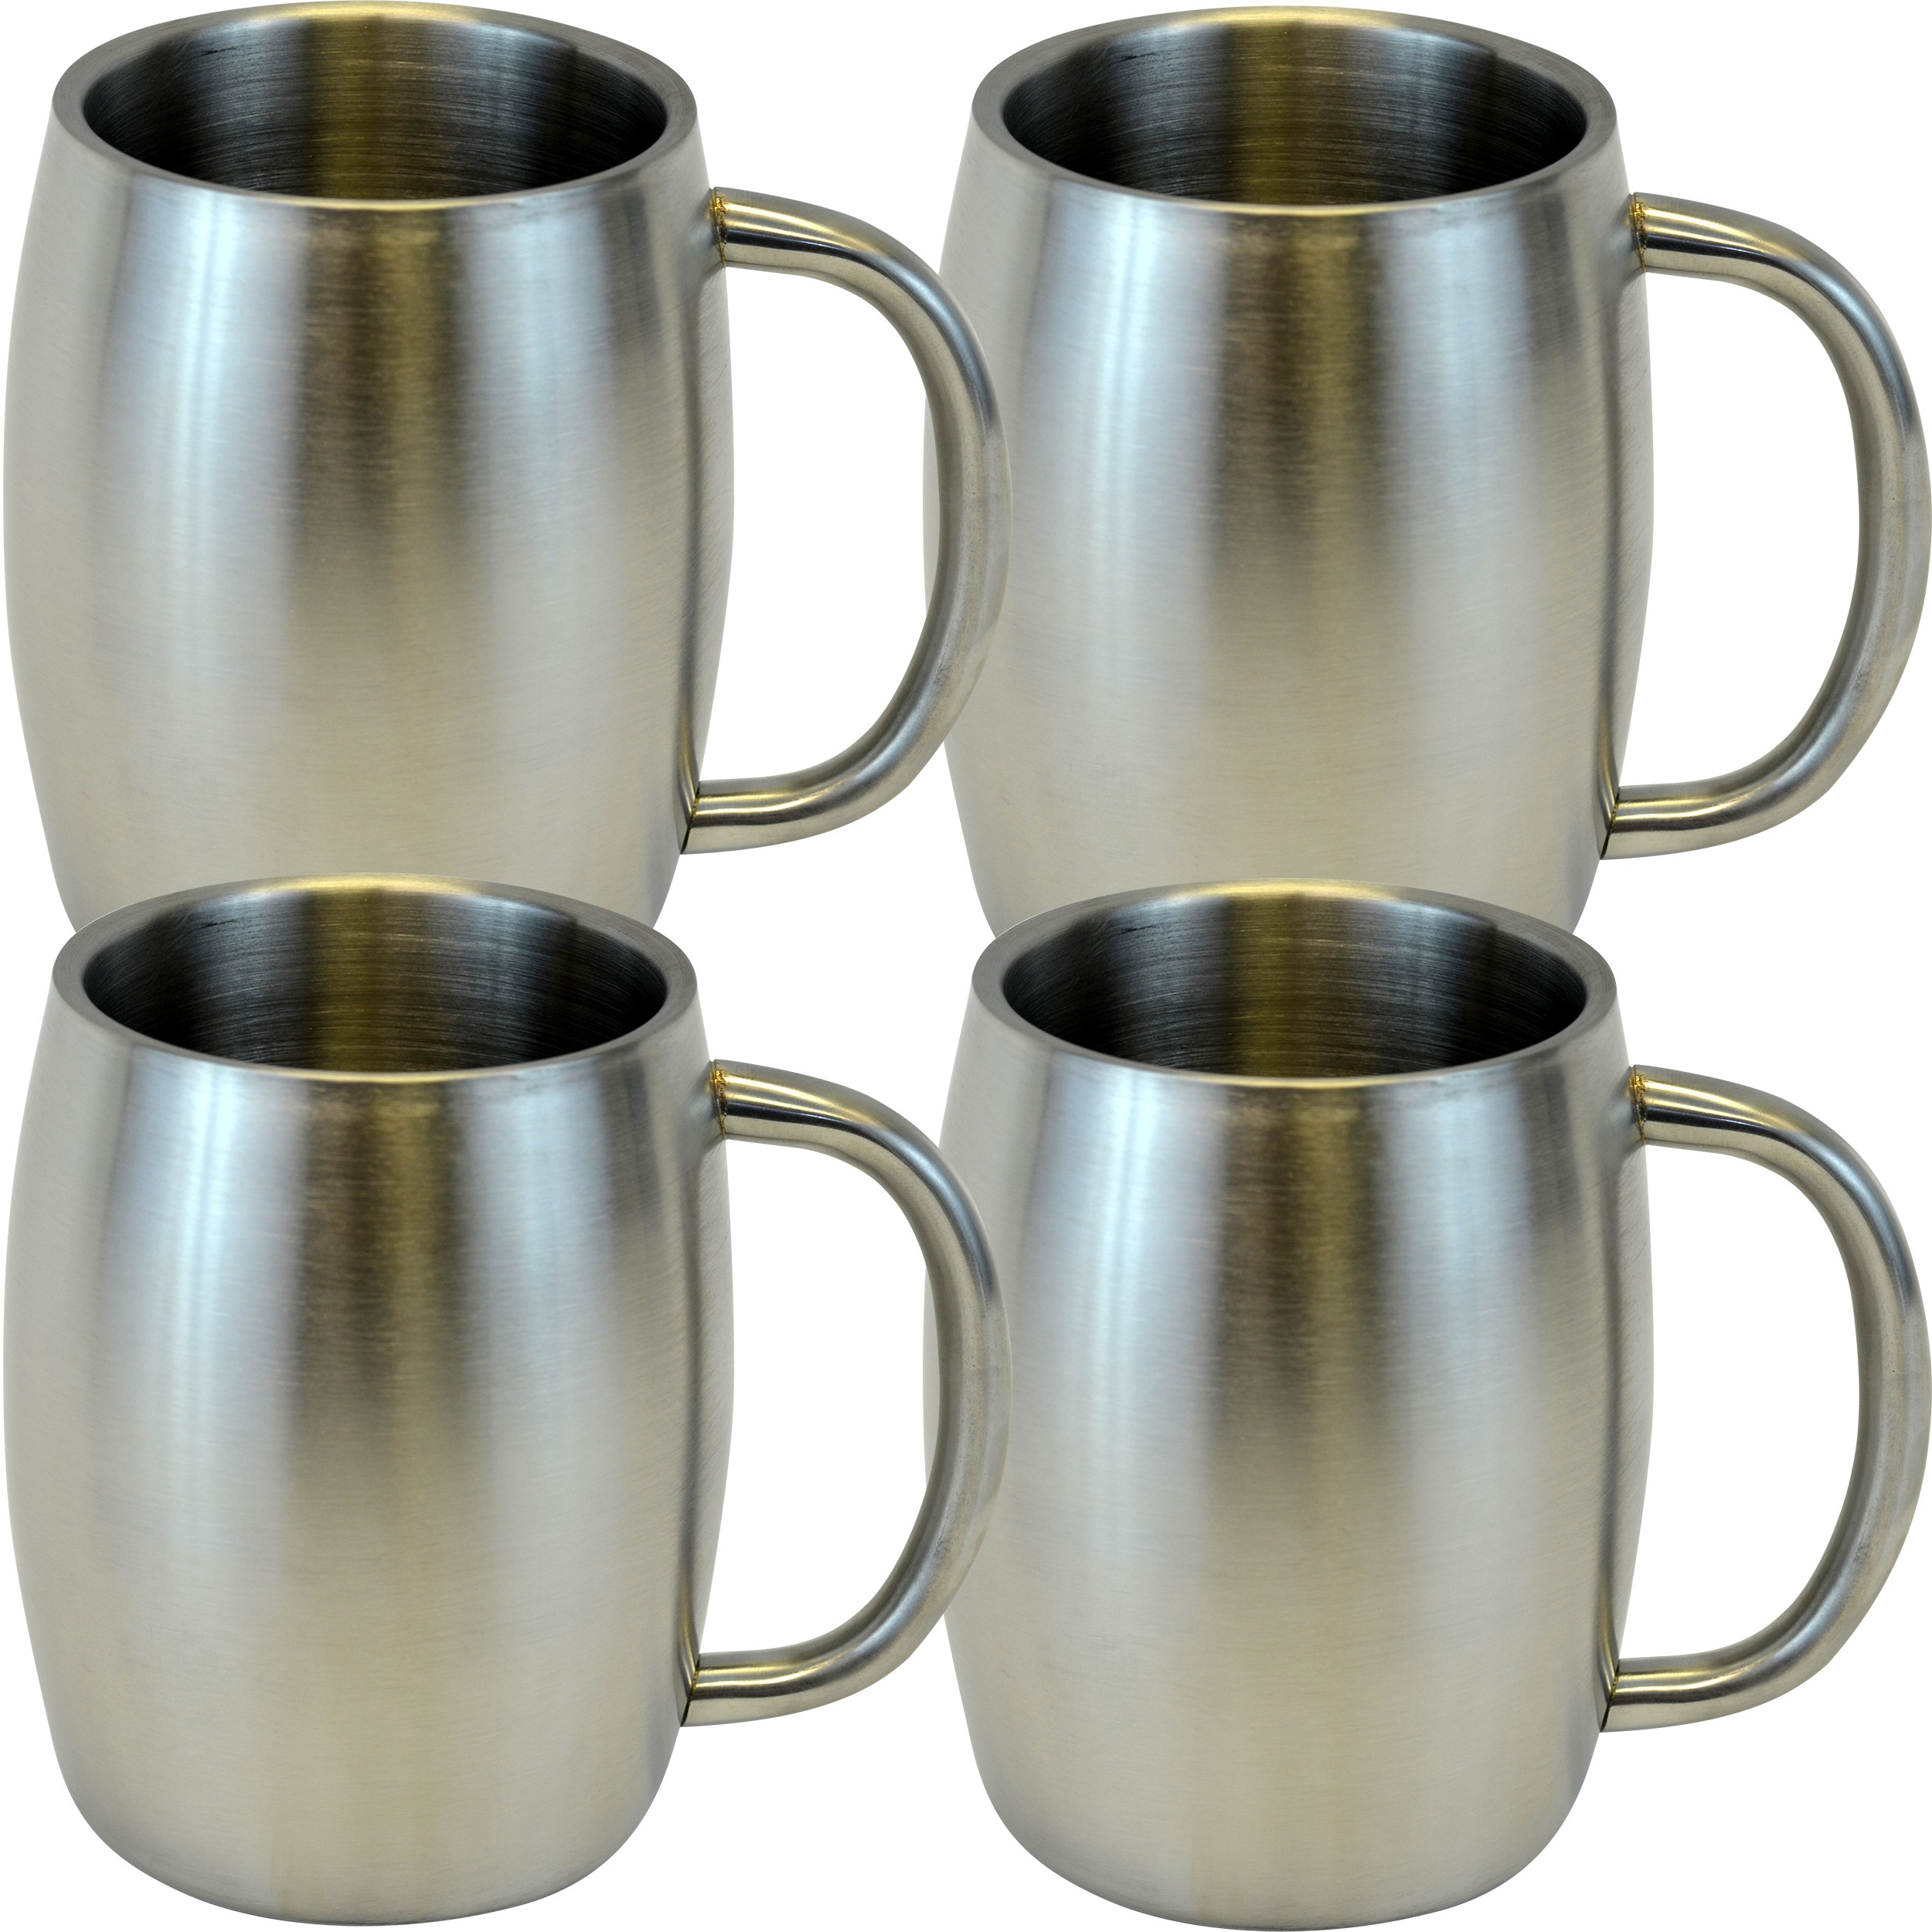 Stainless Double Wall Steel Beer / Coffee / Desk Mug, Smooth 14-Ounce, Set of 4